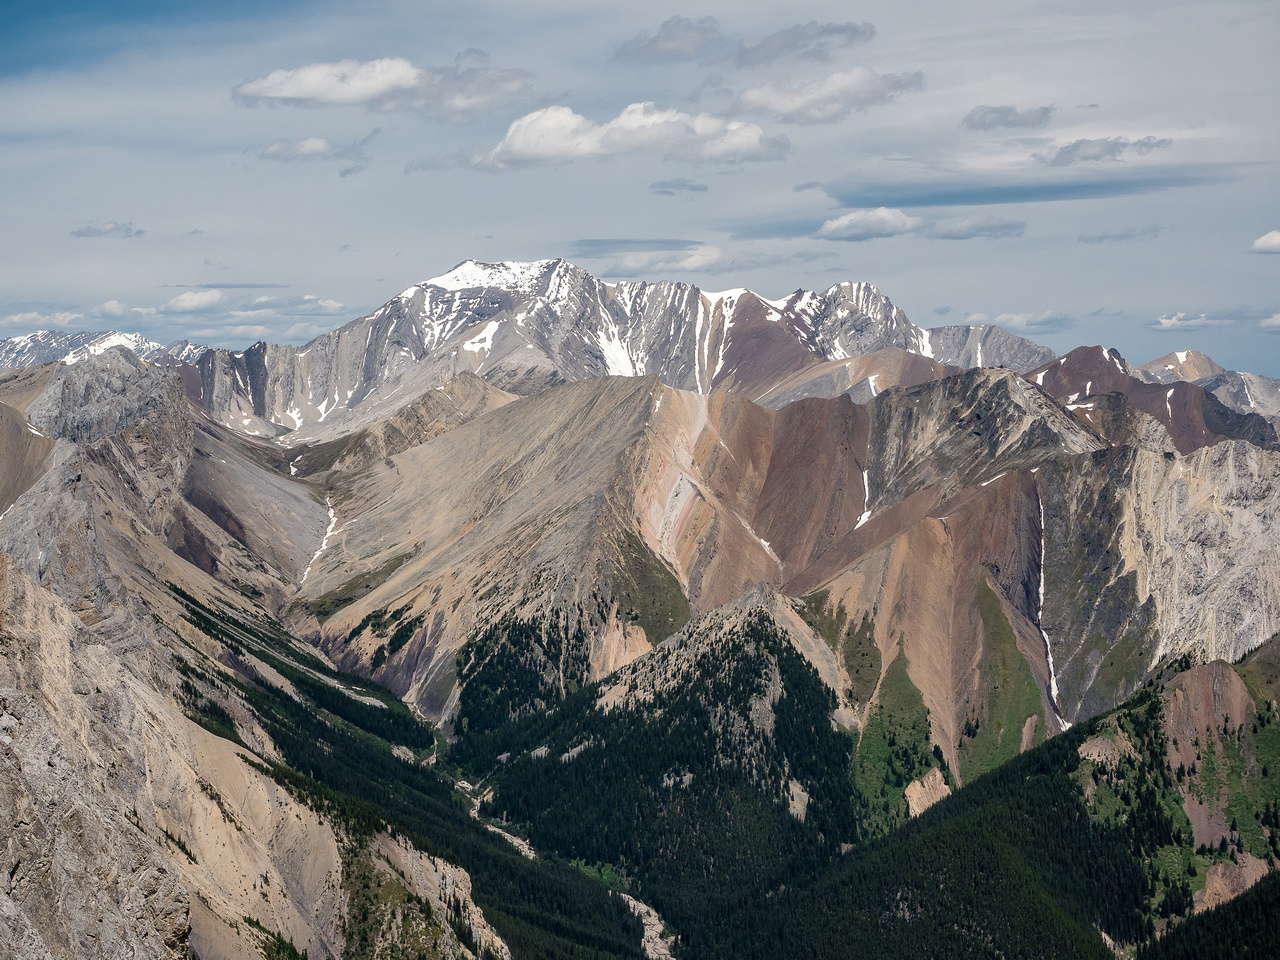 Hangman Peak was first ascended in 1996 by a group of Rick Collier's friends.